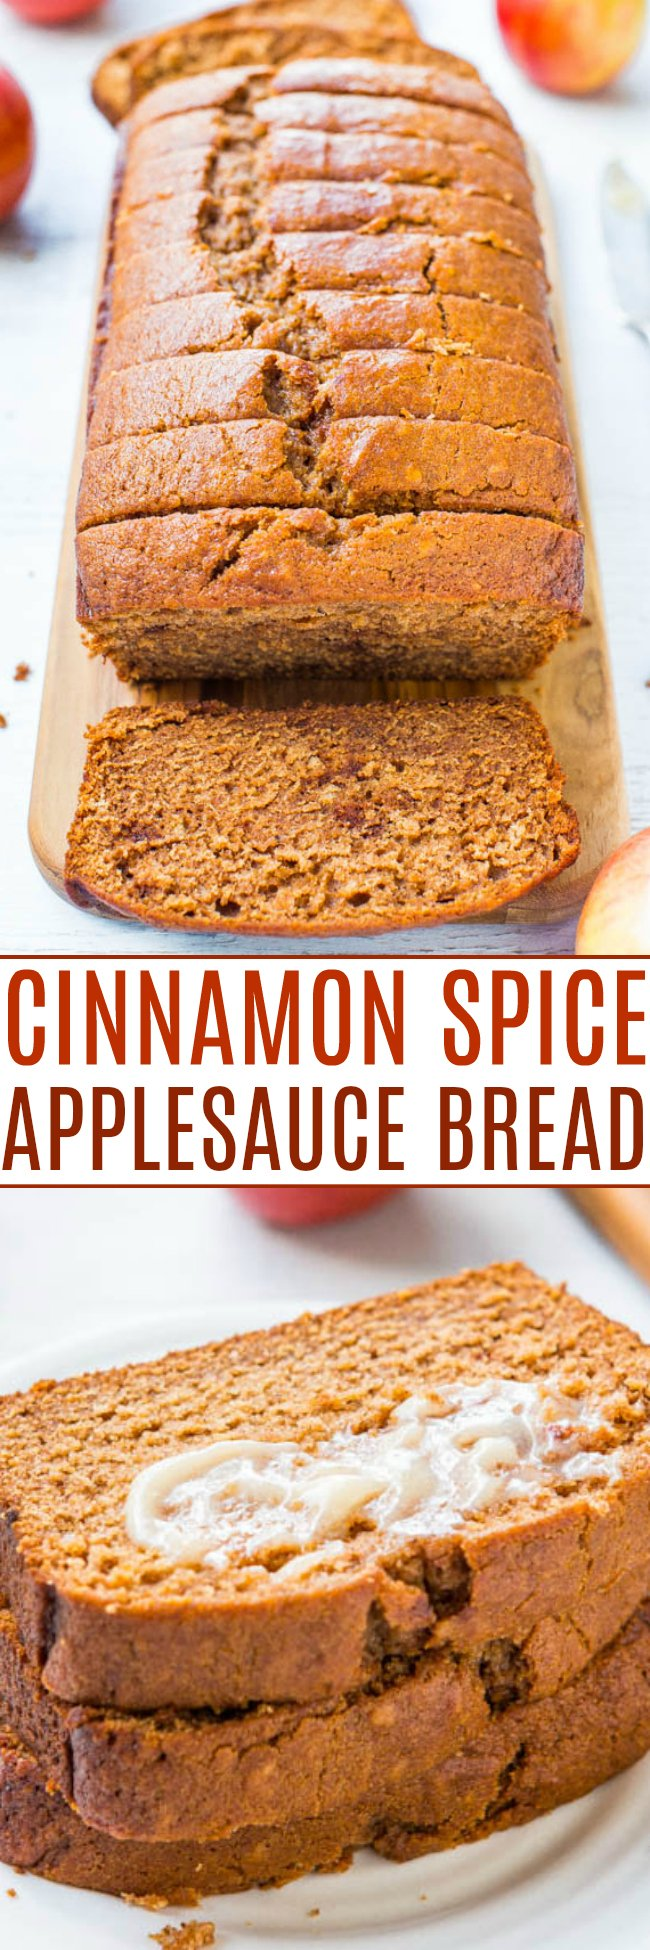 Applesauce Bread with Cinnamon Honey Butter — This applesauce bread is packed with fall flavors and comes together quickly. I serve mine with homemade honey butter, because why not? Everyone LOVES this easy, no-mixer bread!!